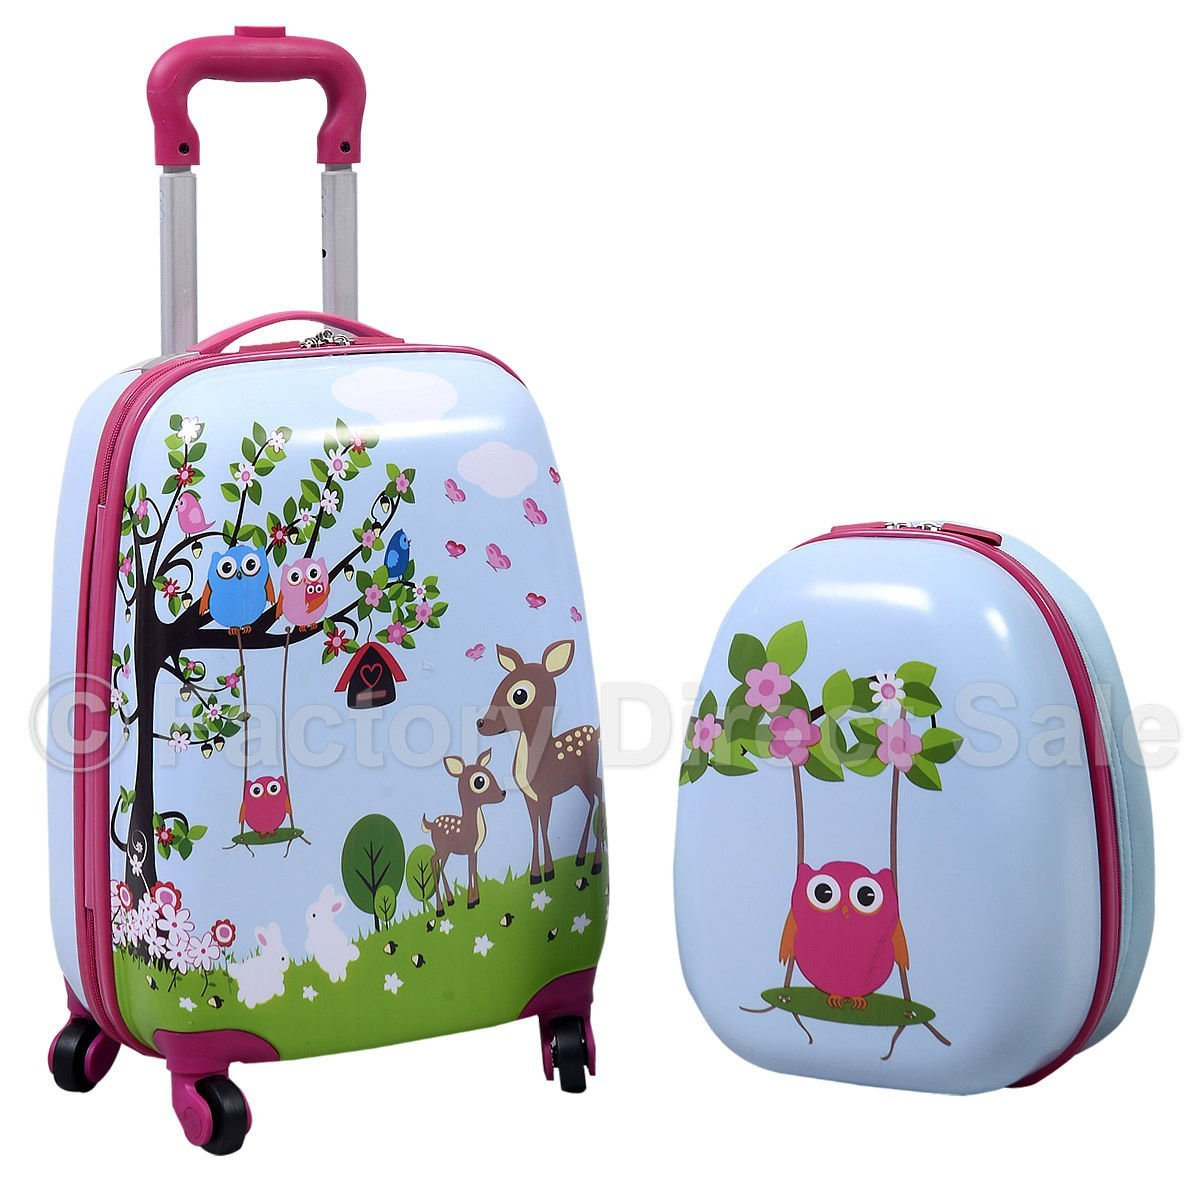 Kids Owl Hard Shell Rolling Luggage and Backpack Set • Owl Delights